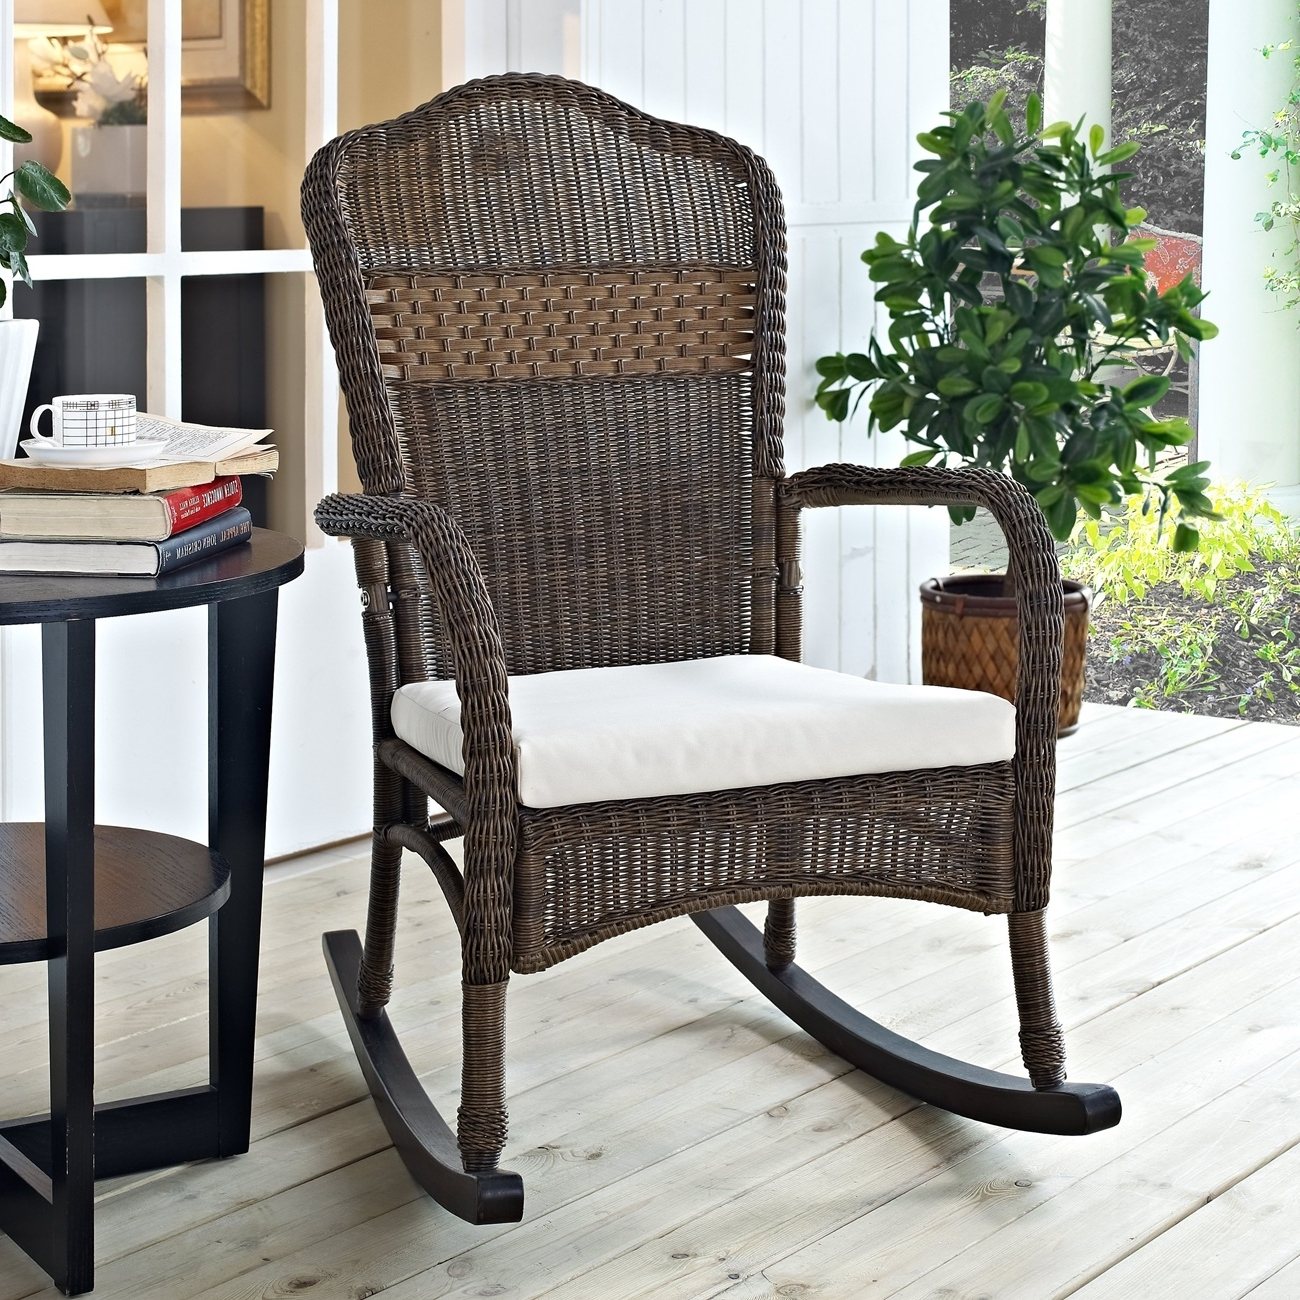 Well Known Awesome Patio Rocking Chair — Wilson Home Ideas : Choosing A Patio Regarding Padded Patio Rocking Chairs (View 15 of 15)